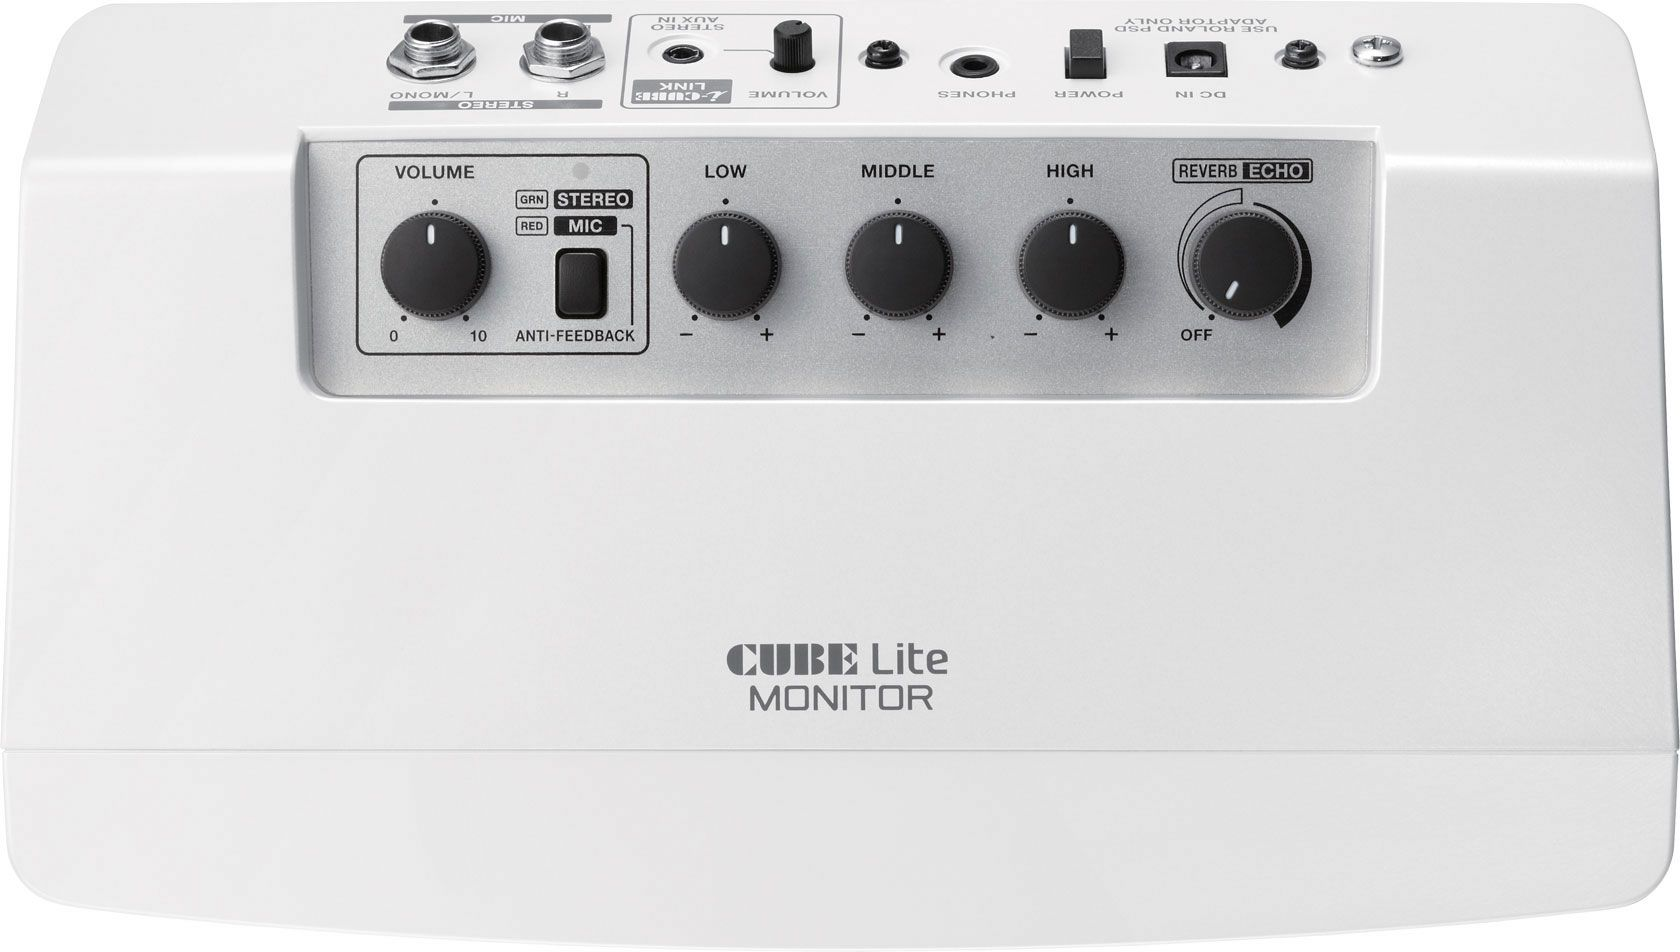 CUBE Lite MONITOR [CUBE-LM-WH]追加画像